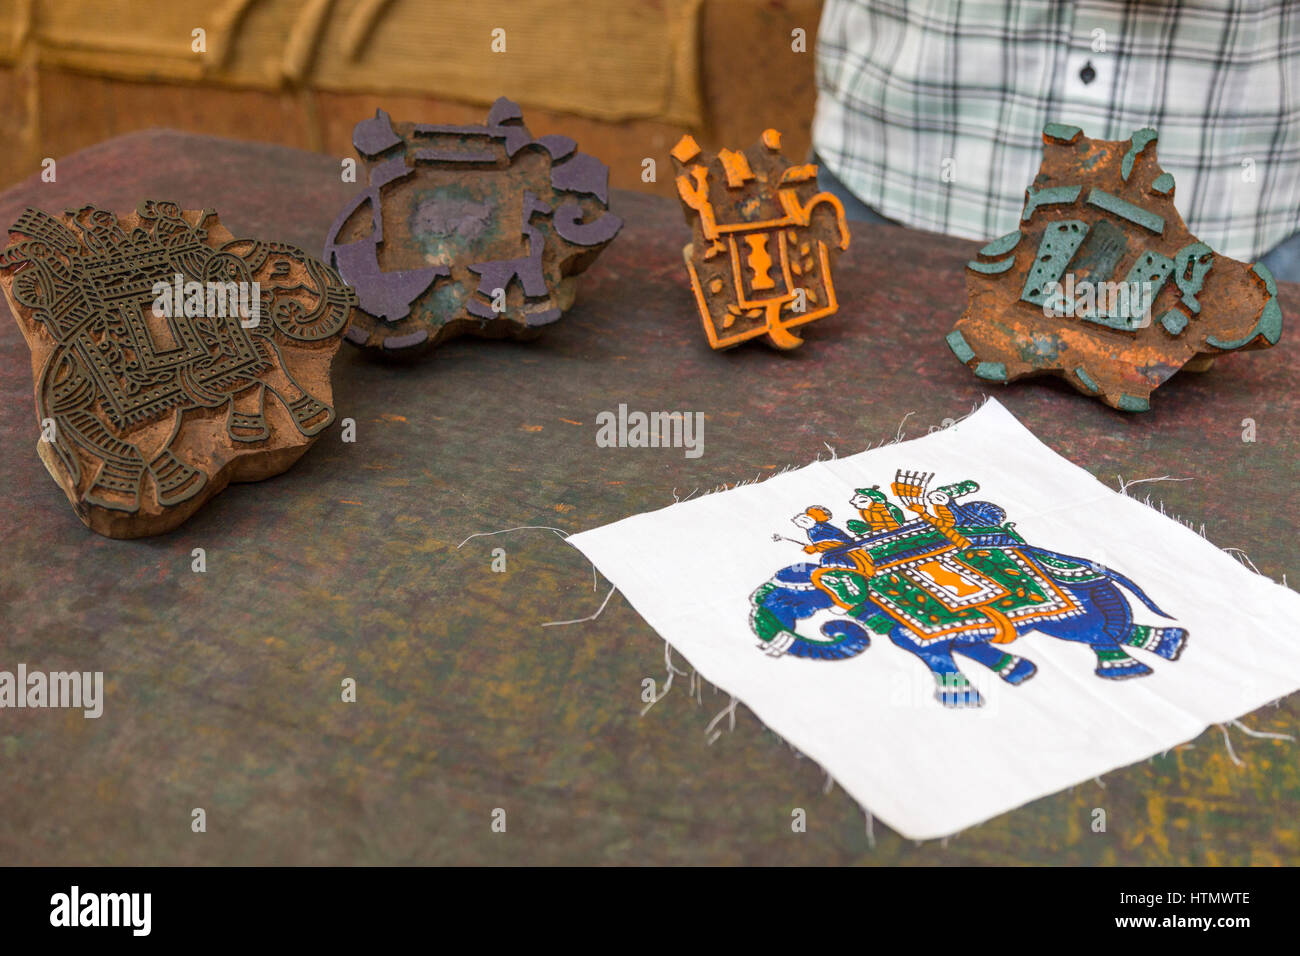 Woodblock printing, Jaipur,  India - Stock Image